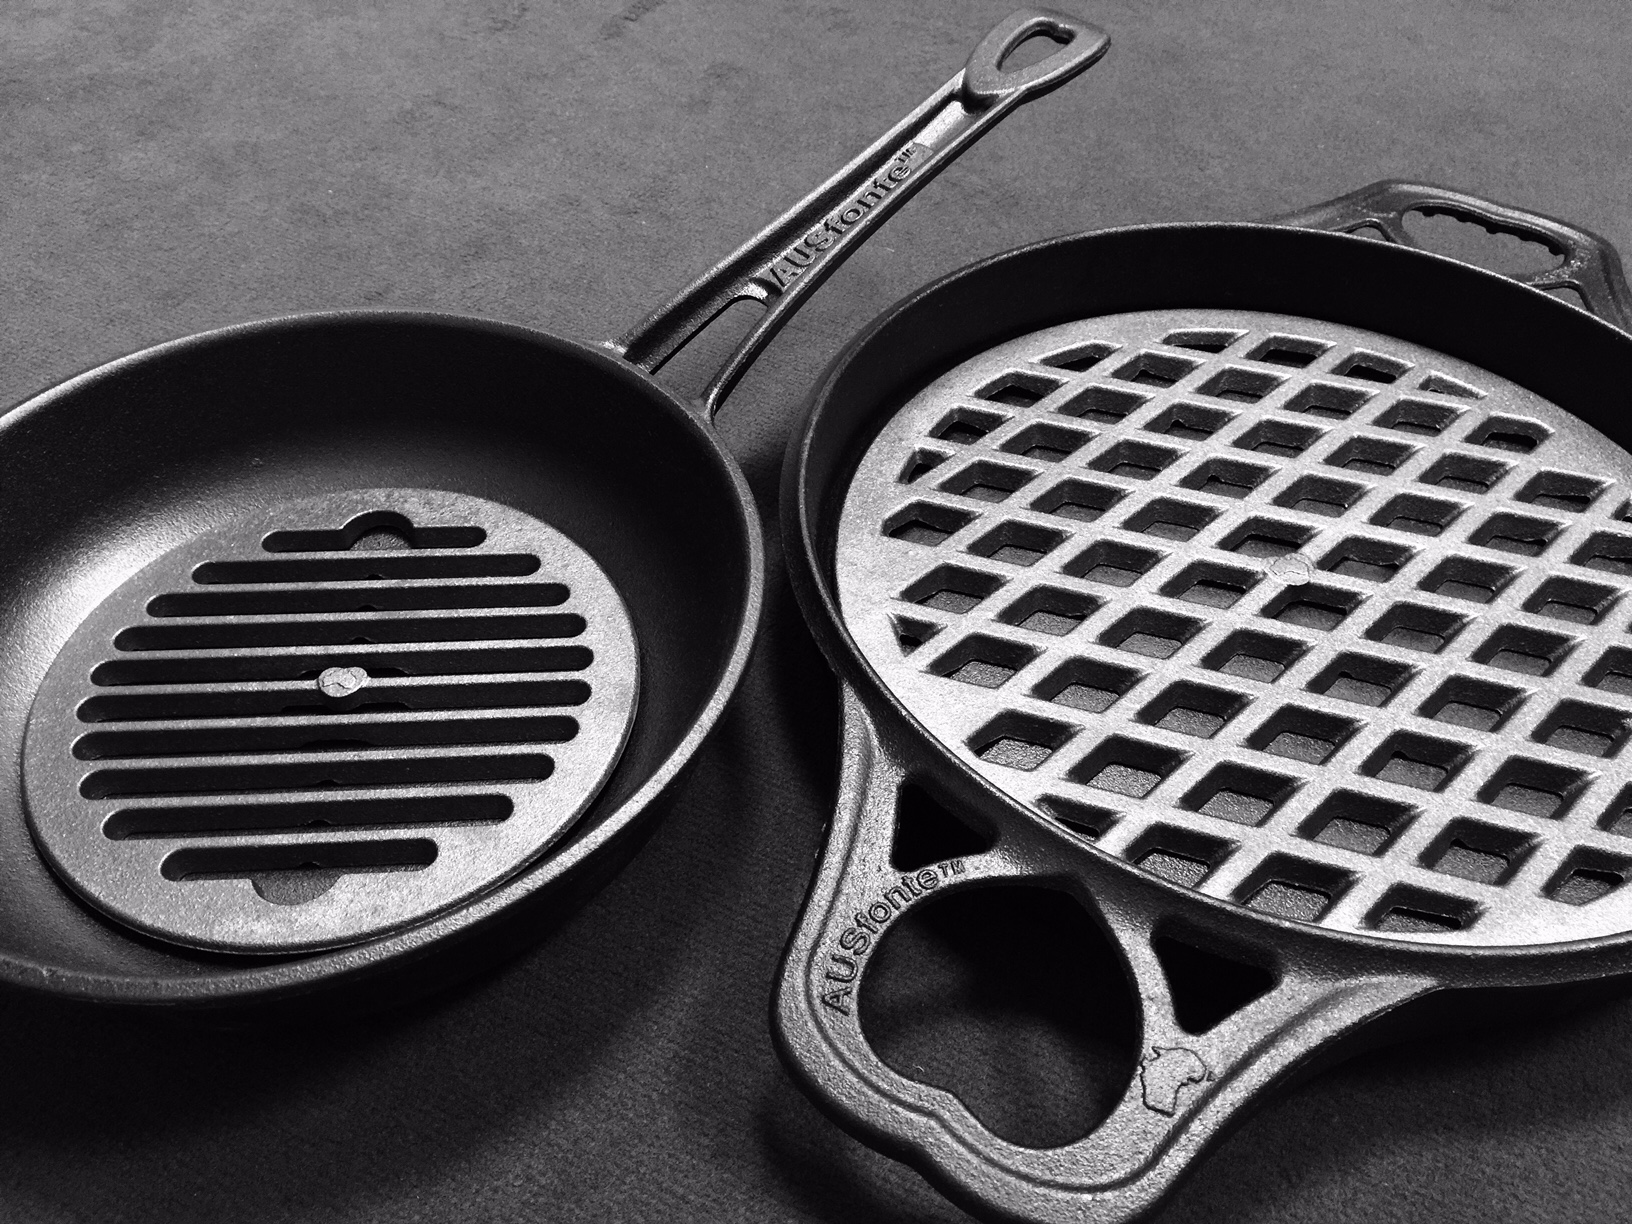 AUSfonte Pan Grill-it cast iron grilling insert 27-2-15c 1024x768.jpg